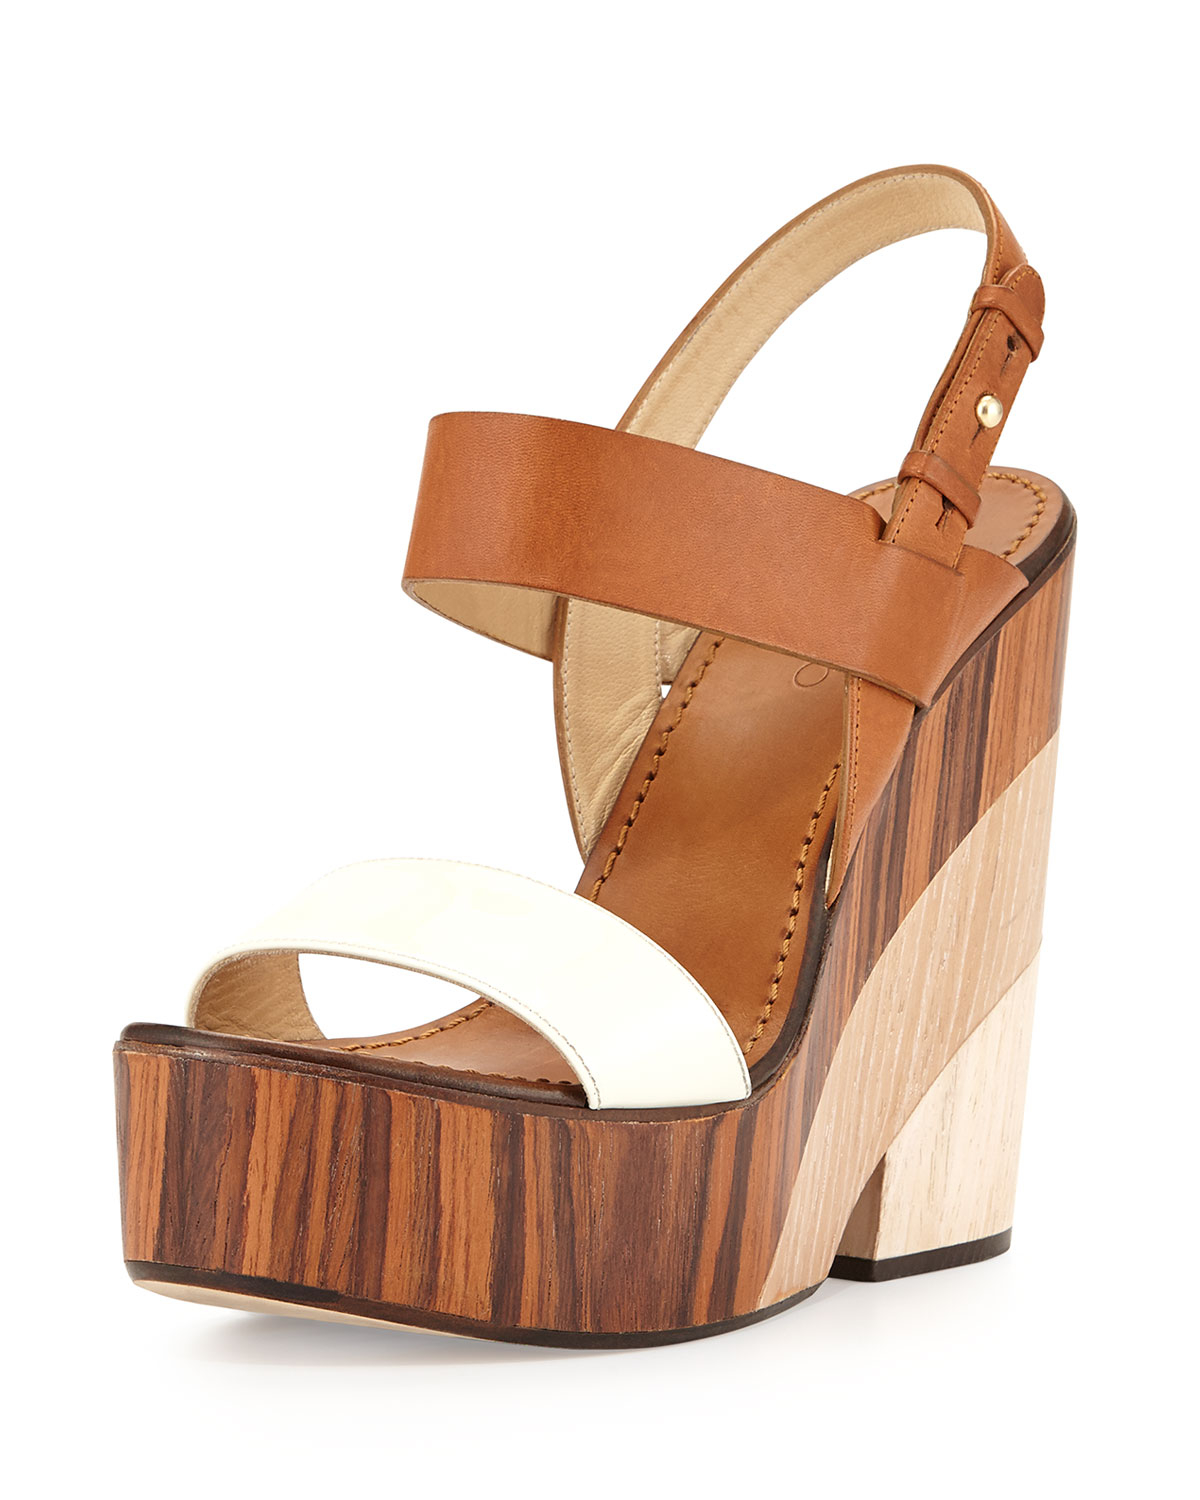 Lyst Jimmy Choo Tricolor Wooden Wedge Sandals In Brown